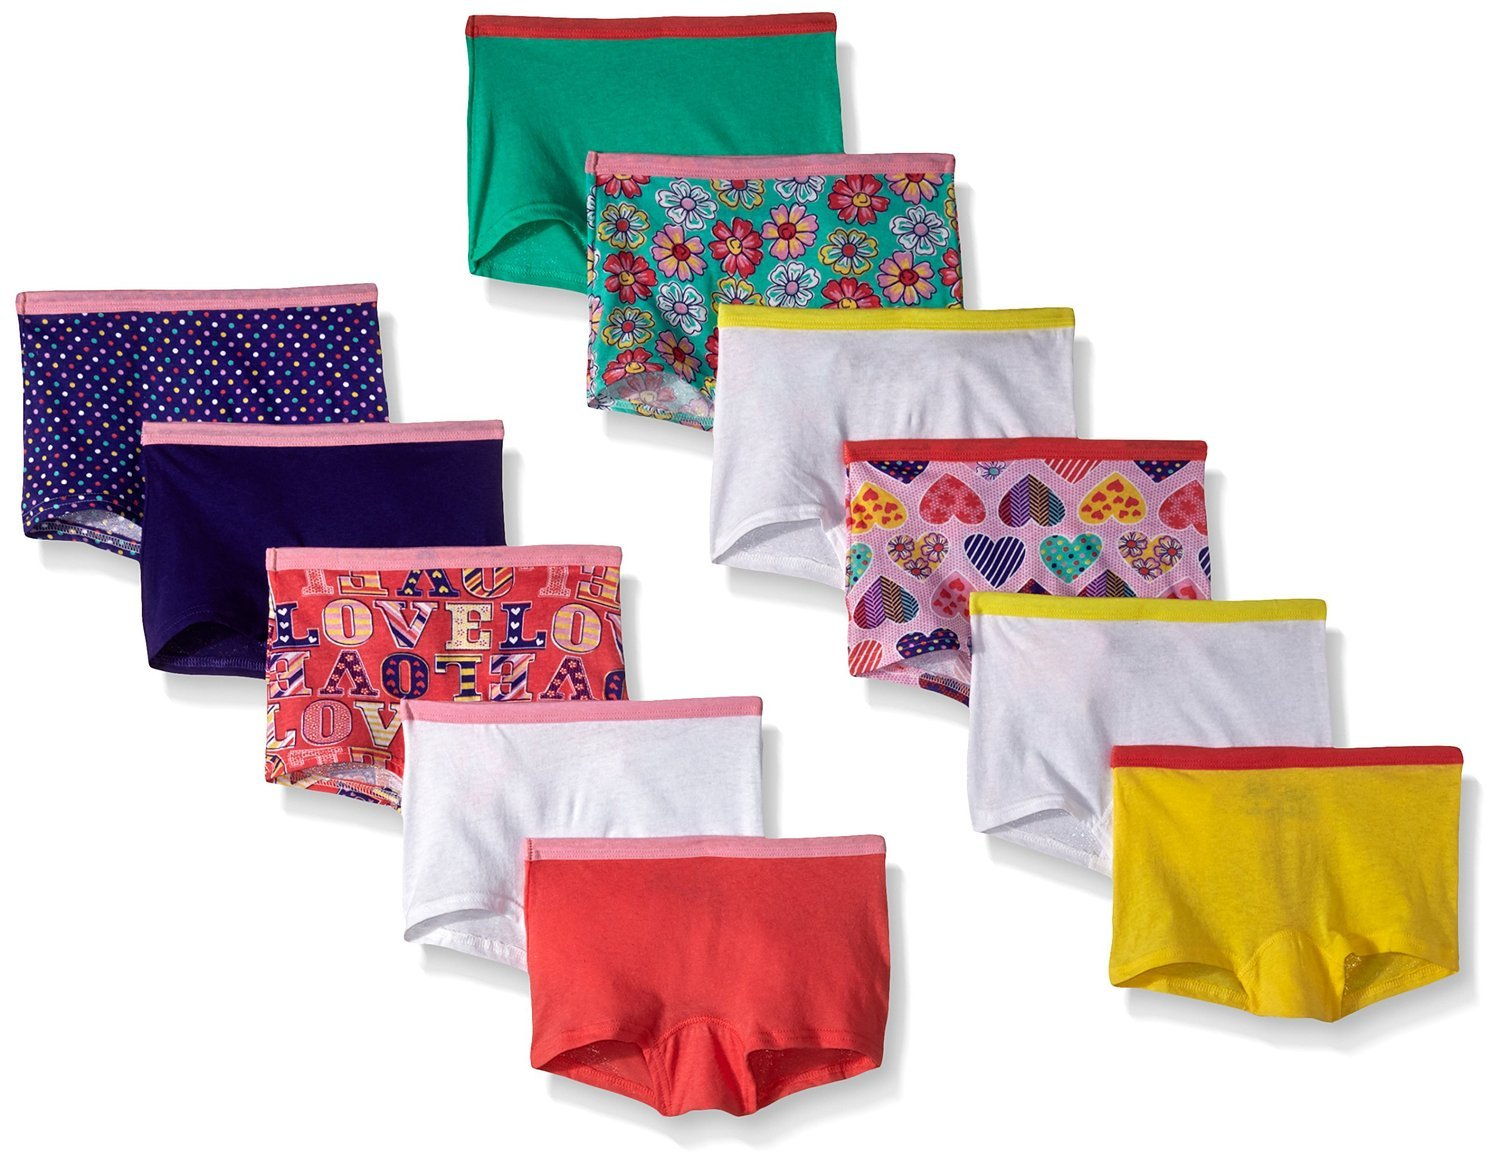 Fruit of the Loom Girls 11Pack Assorted Cotton Boy Shorts Panties, 14